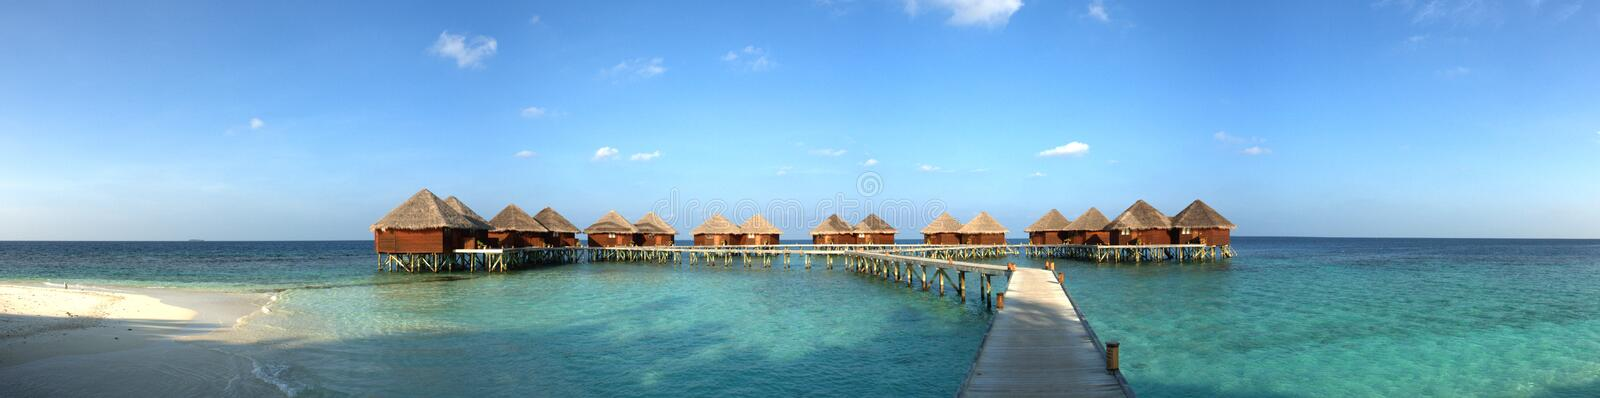 Maldive island resort. Panorama of water bungalows in a lagoon royalty free stock image